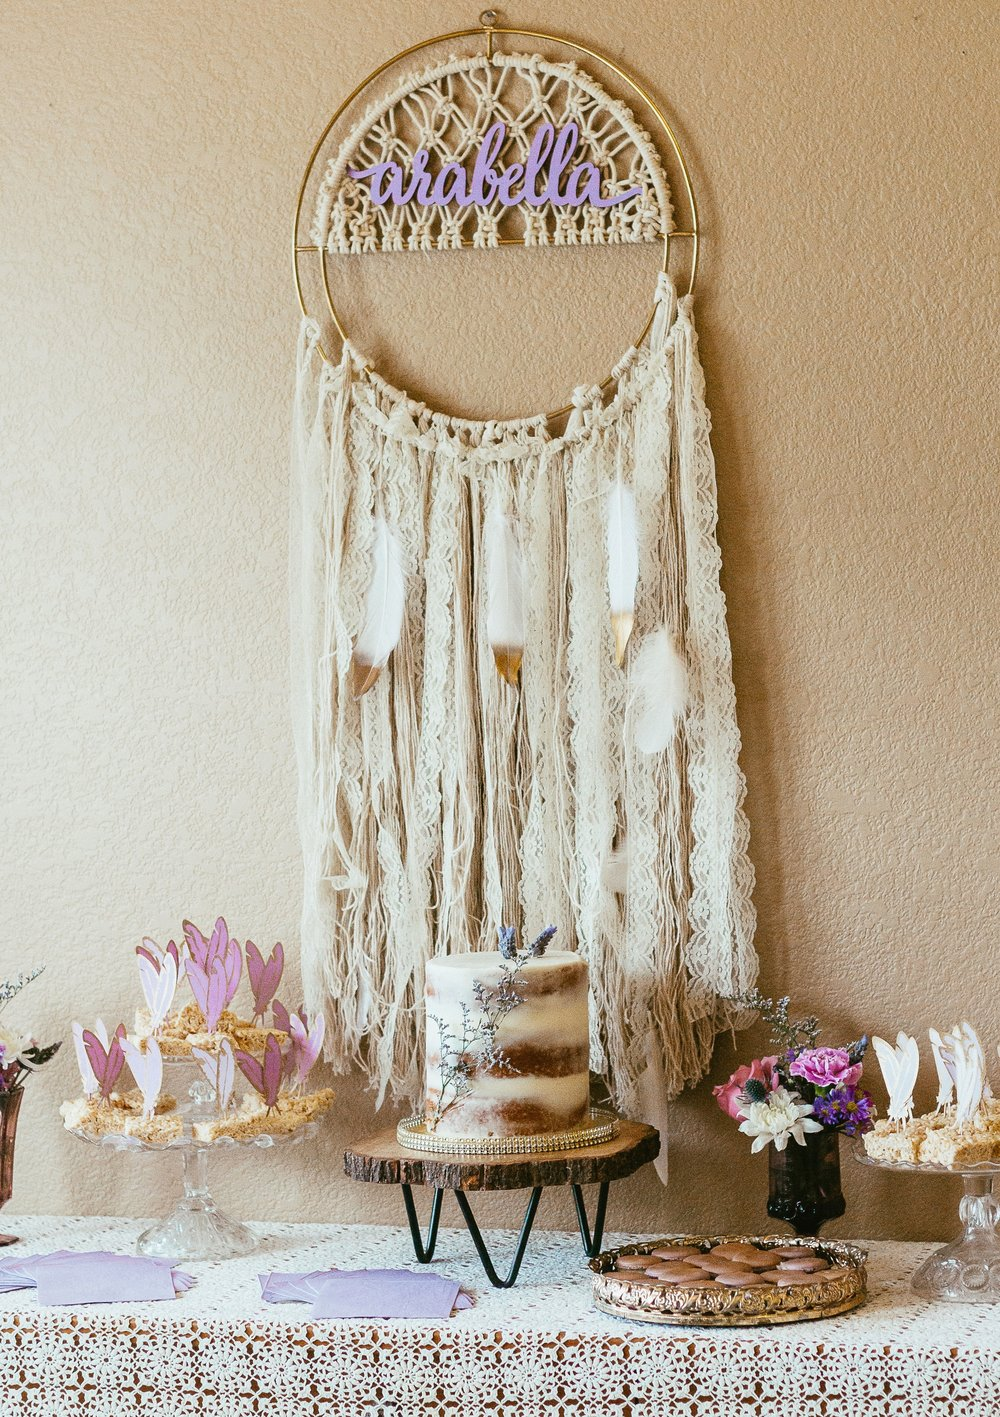 Dessert table featuring our glass cake servers, mirrored tray, dreamcatcher, lace tablecloth, and amethyst goblets